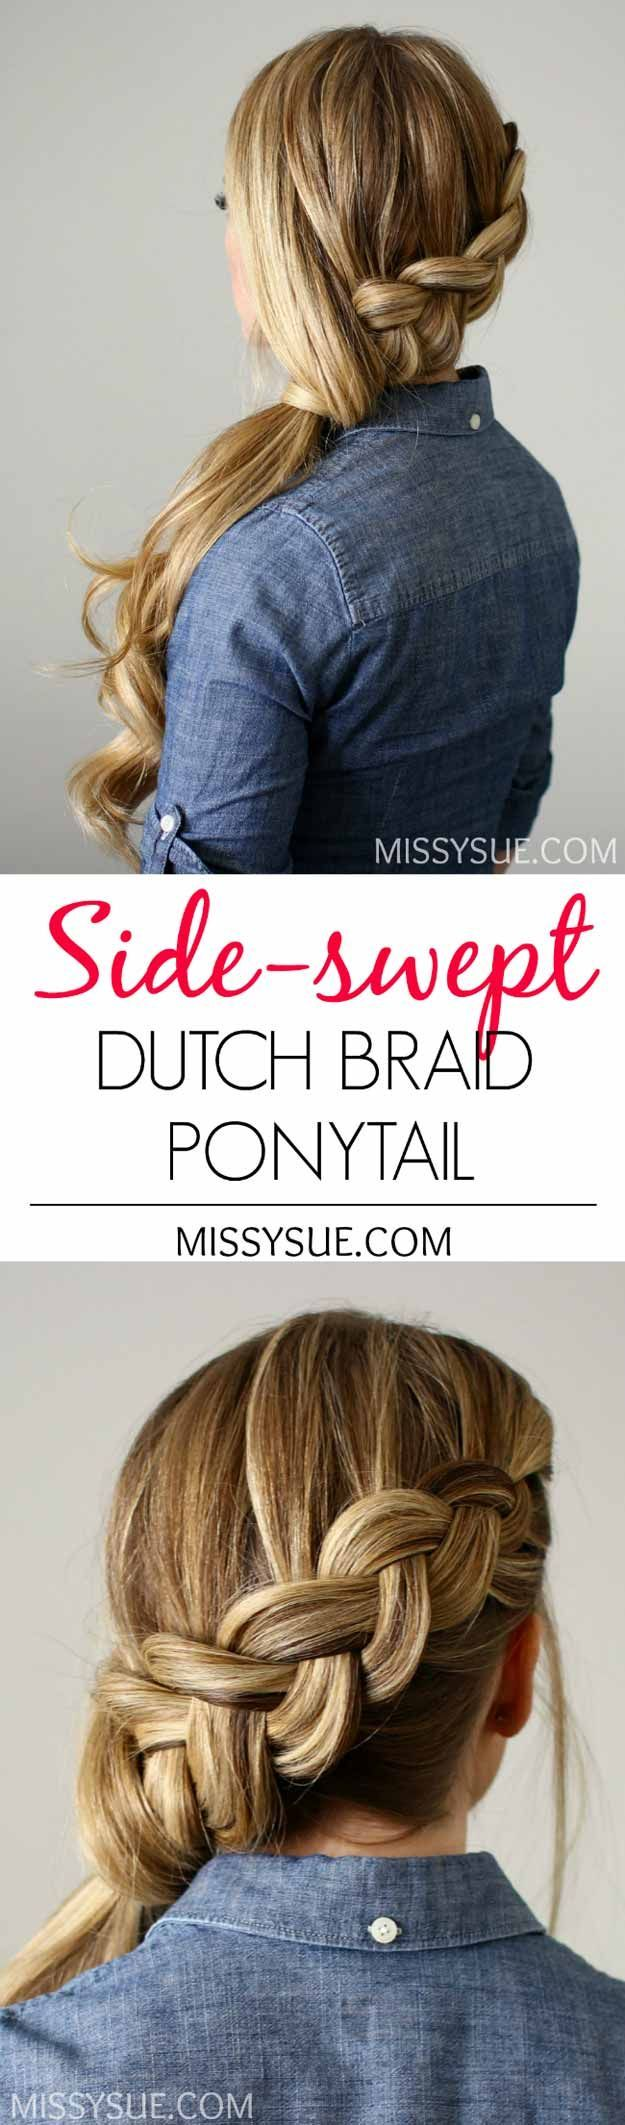 Best Hairstyles For Teens - Side-swept Dutch Braid Ponytail- Easy And Cute Hairc...